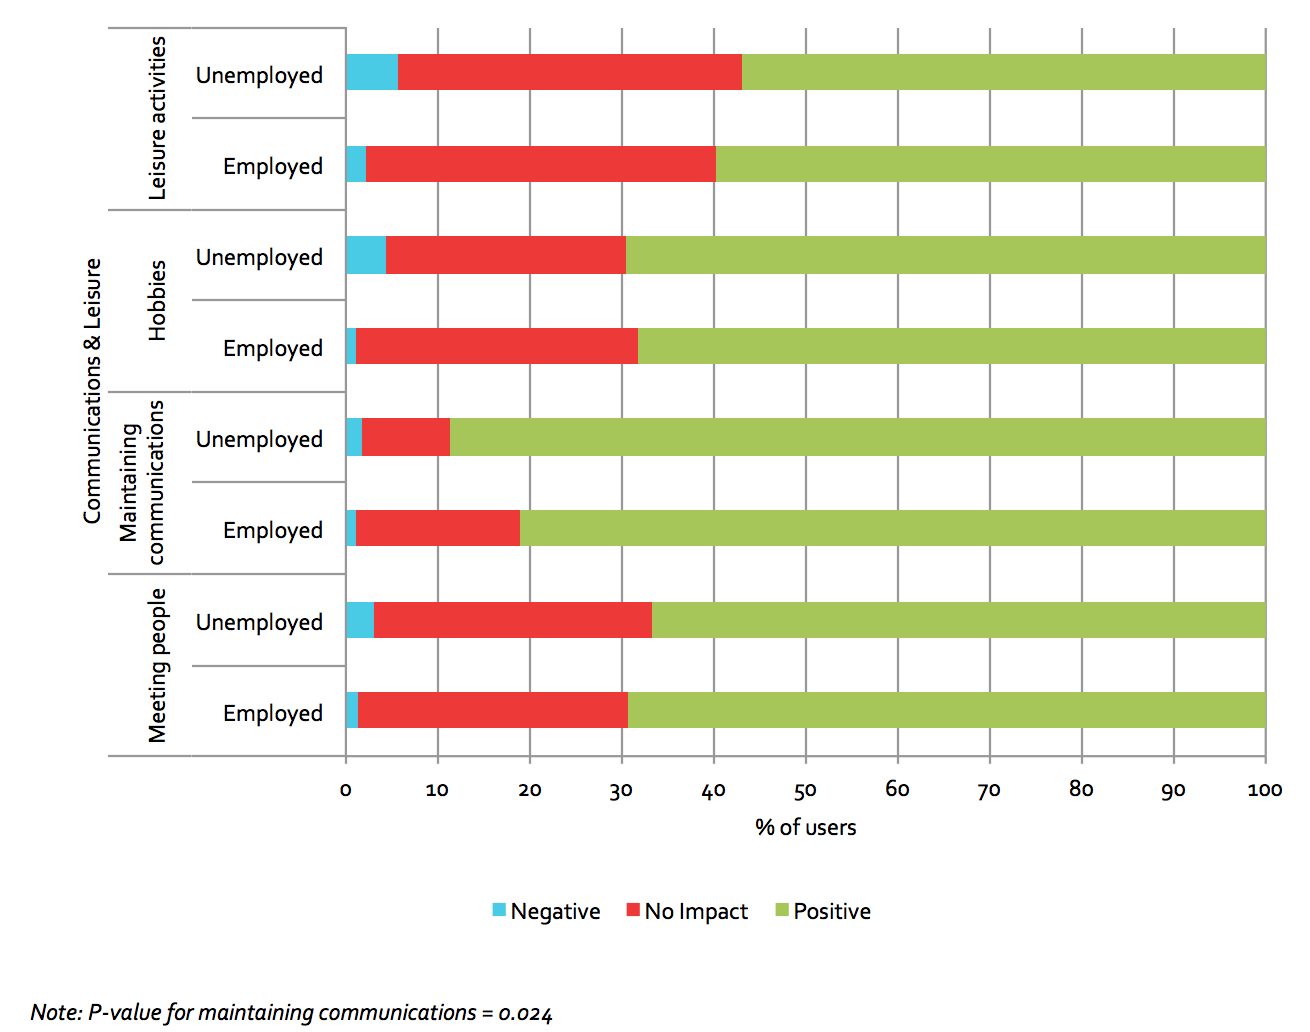 Figure 5.12: Impact on employed vs. unemployed users, communications & leisure domain